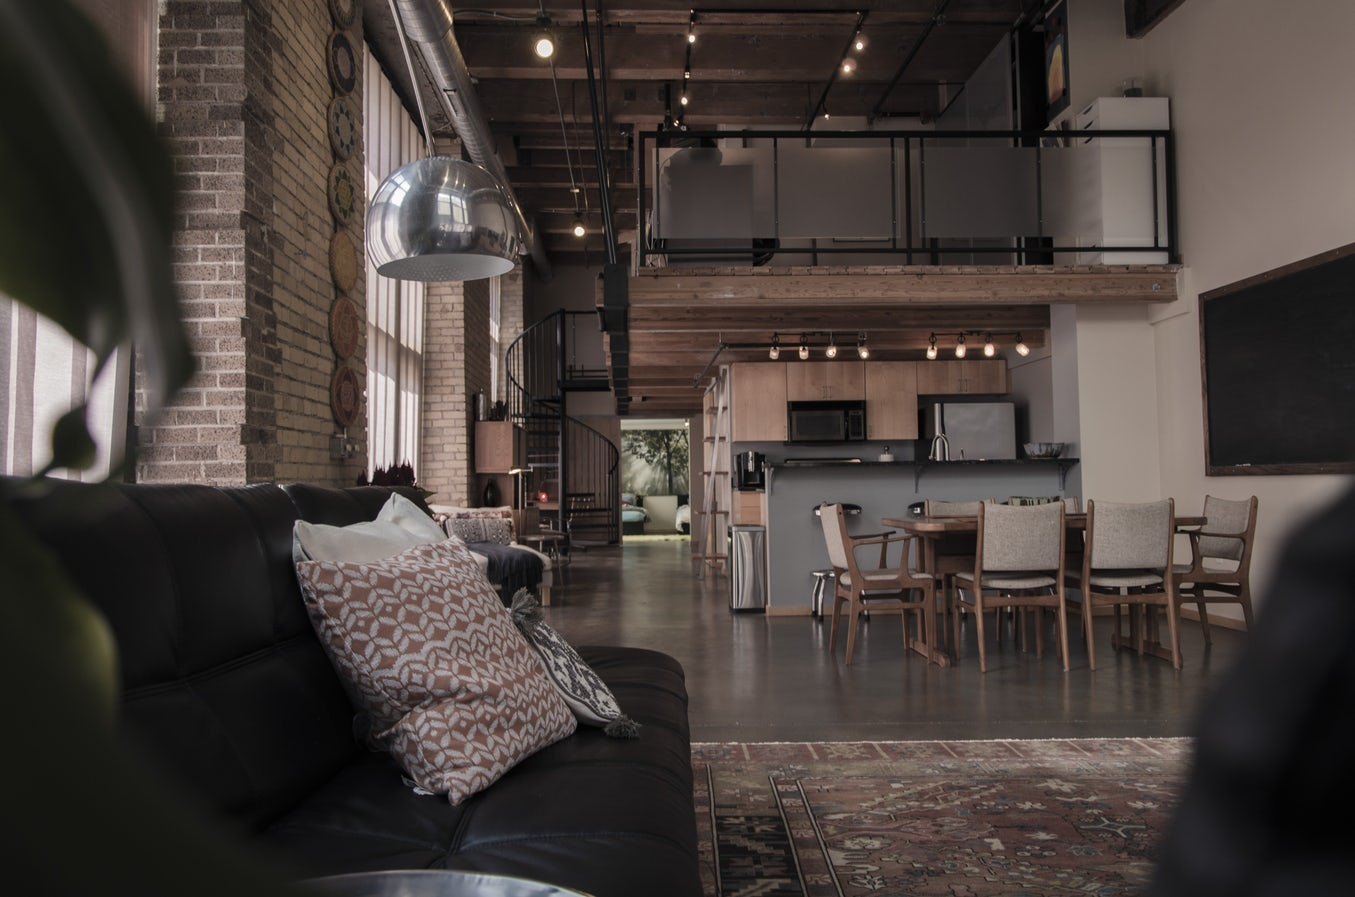 Industrial kitchen and dining room loft area